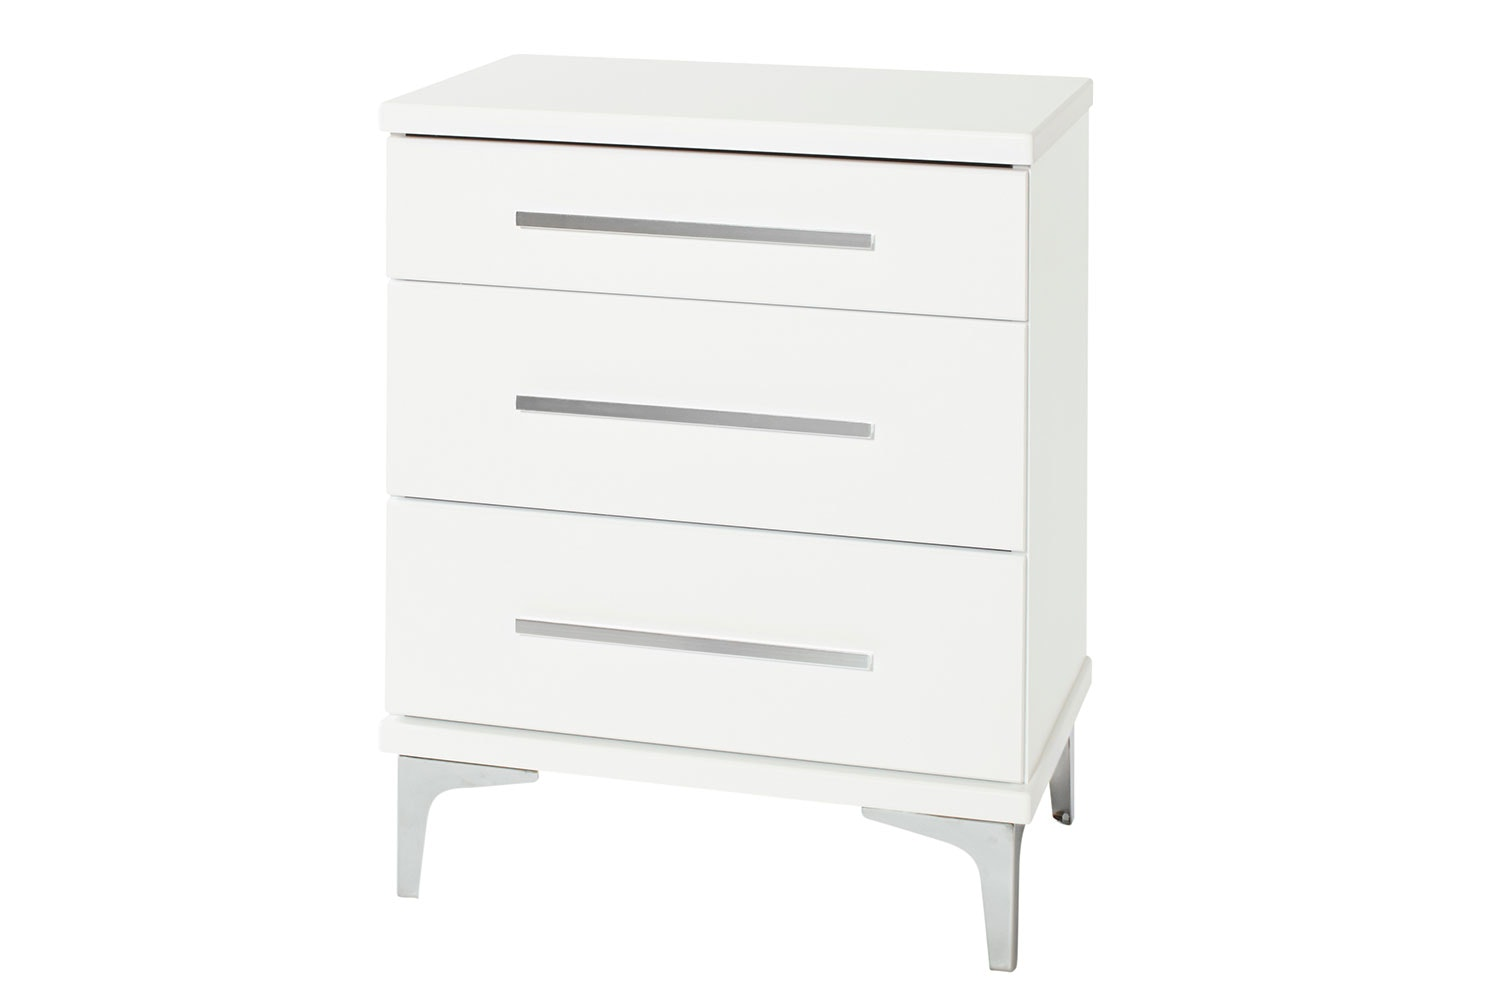 Salento 3 Drawer Tall Bedside Table by Platform 10